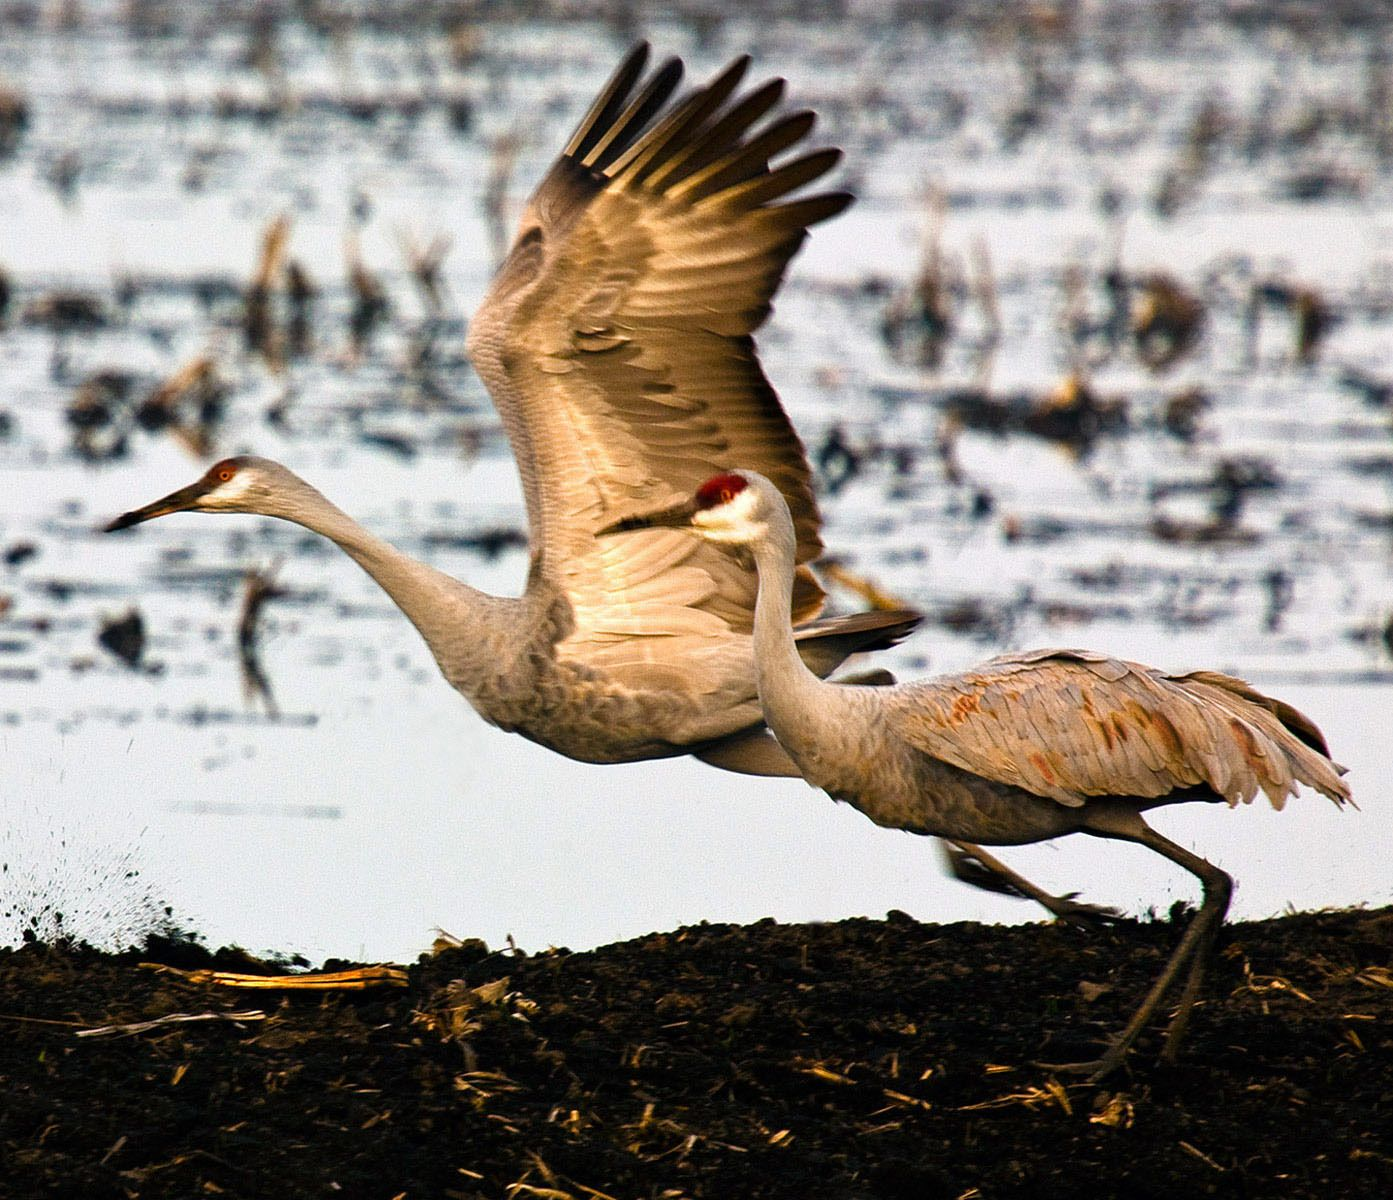 Taking Off II, Sandhill Cranes, Isenberg Rreserve, California